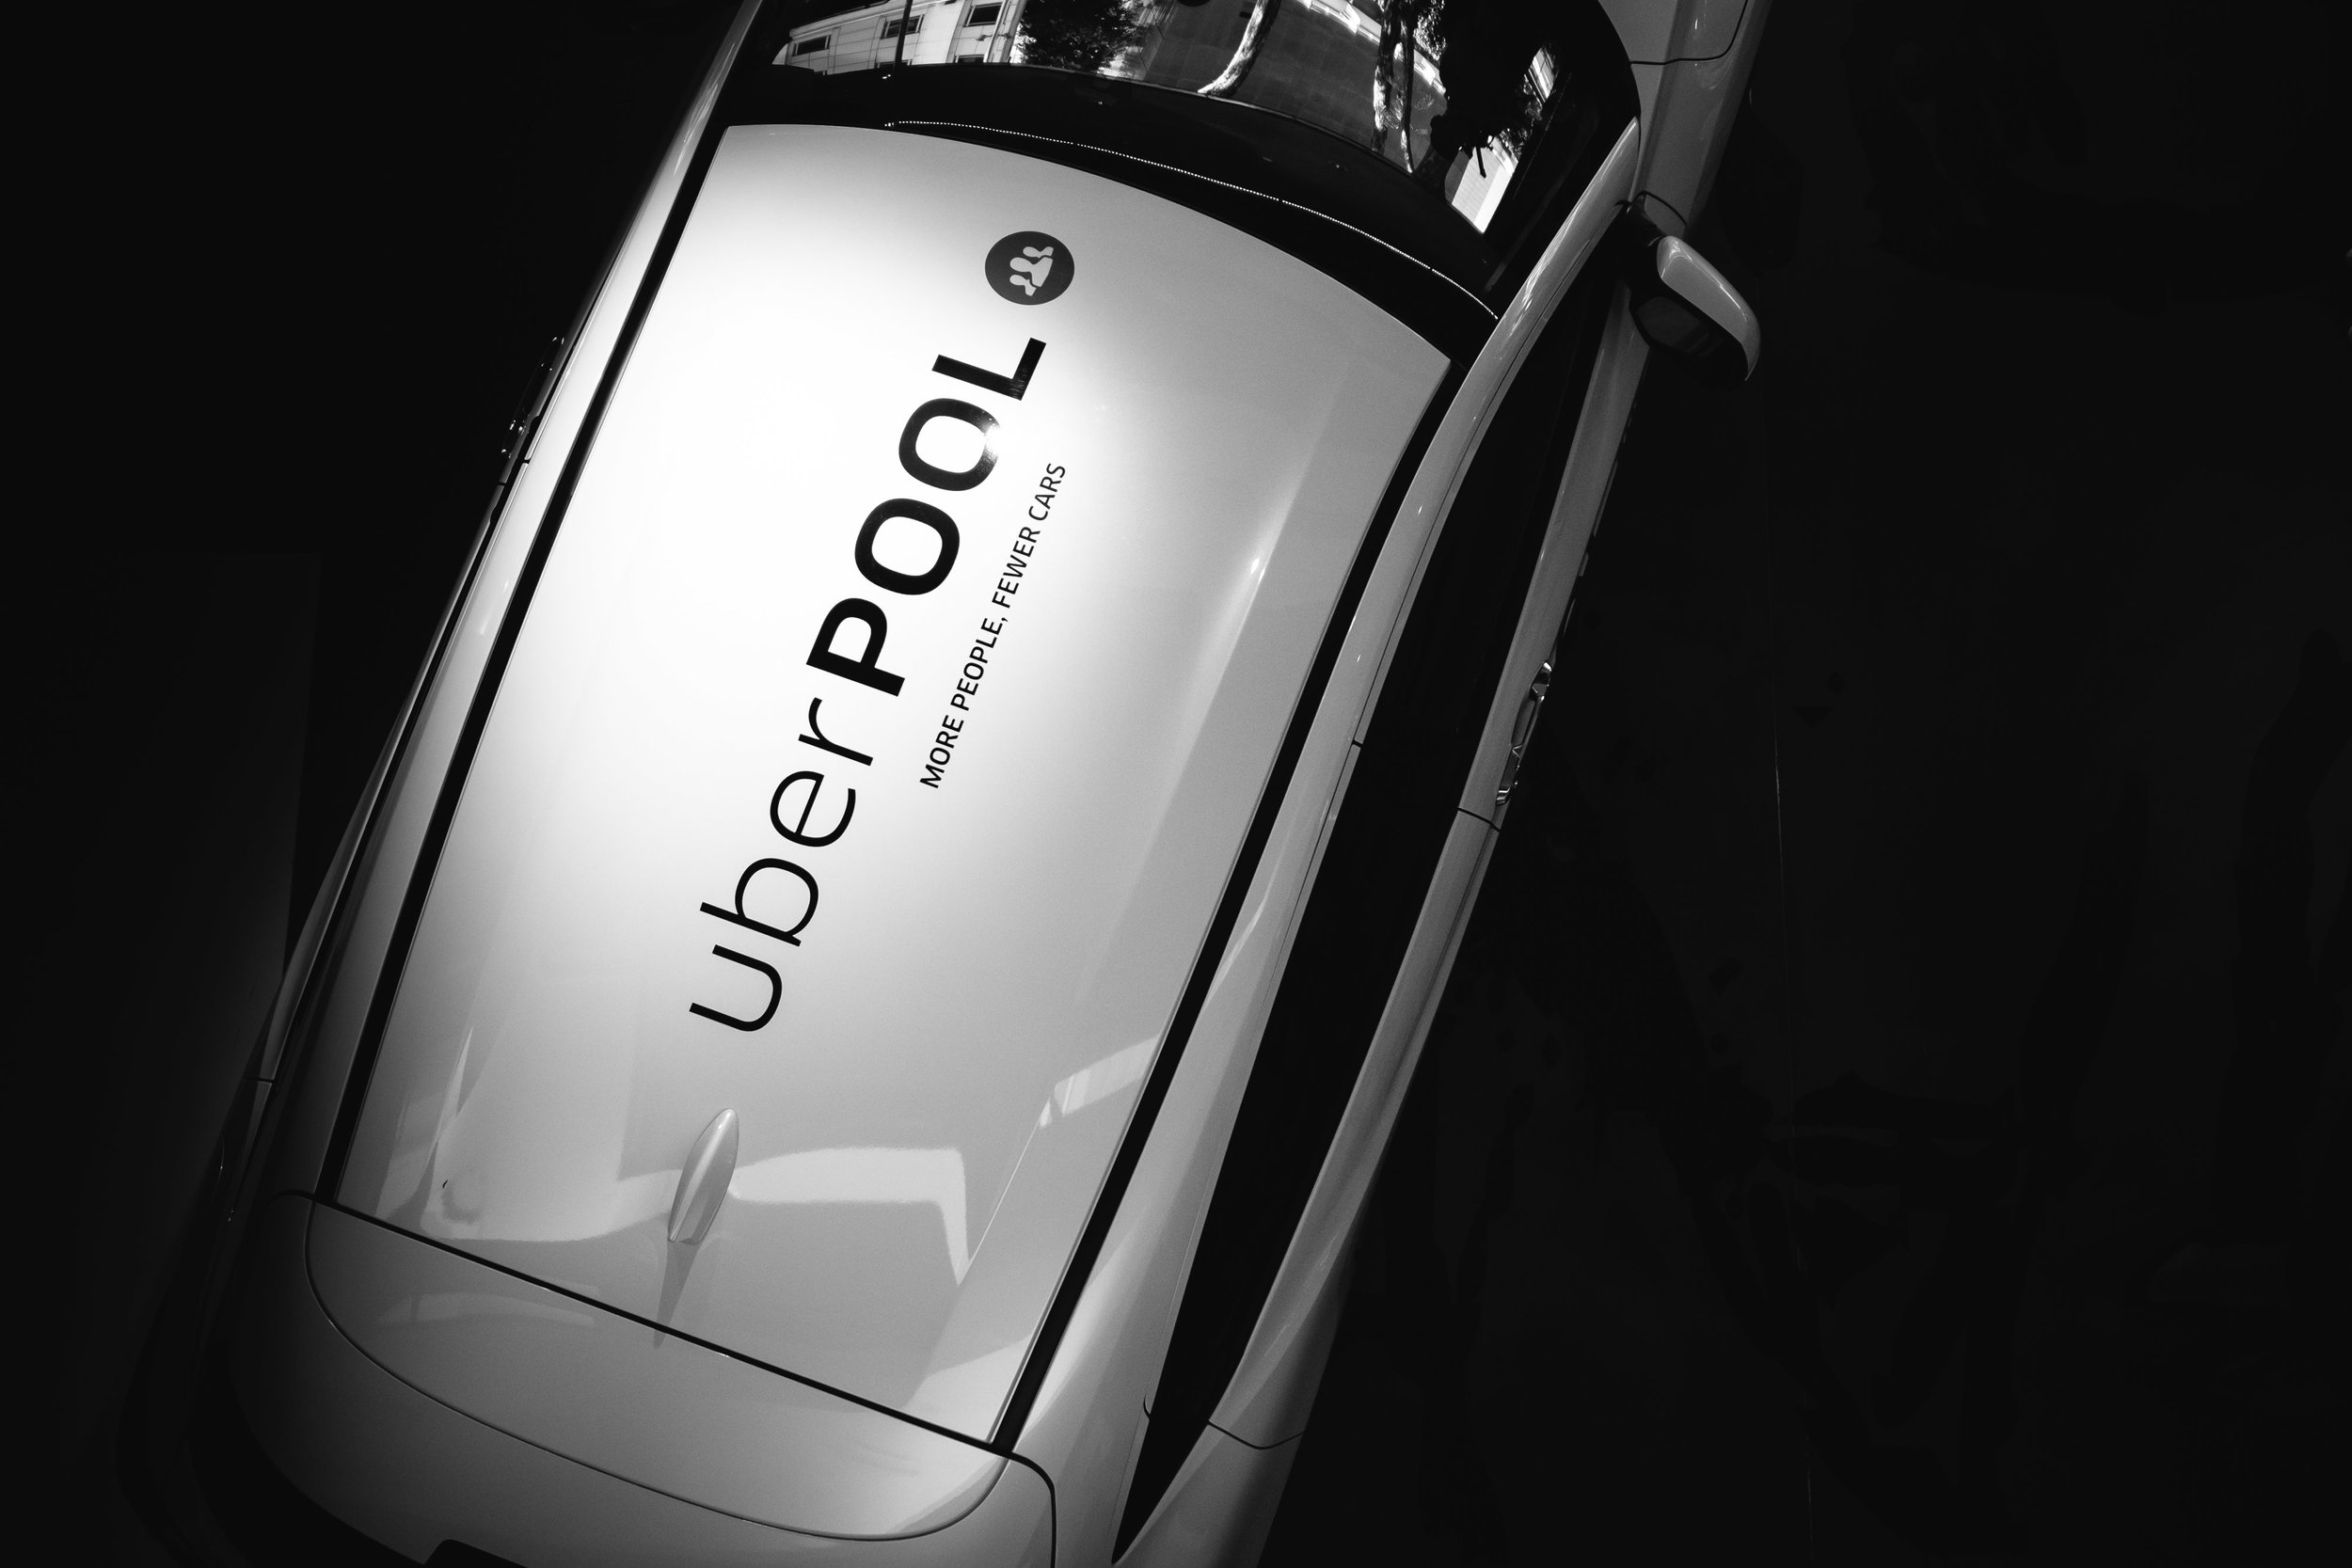 UberPool Launch-38.jpg